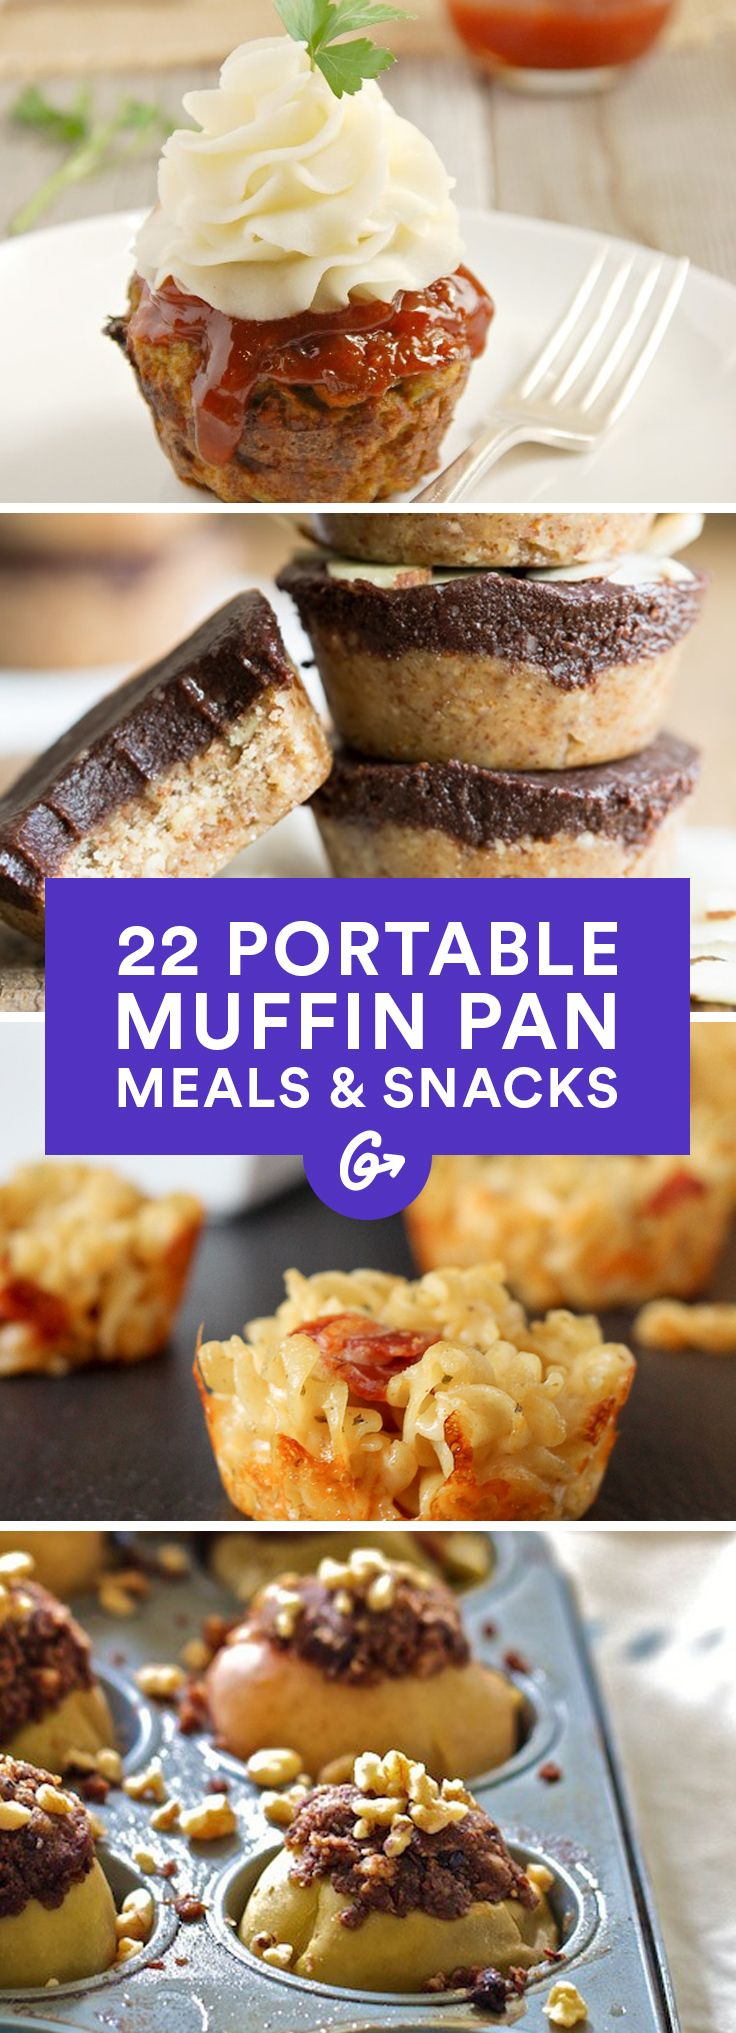 22 Portable Meals and Snacks You Can Make in a Muffin Pan #muffins #recipes #healthy http://greatist.com/eat/portable-muffin-tin-recipes